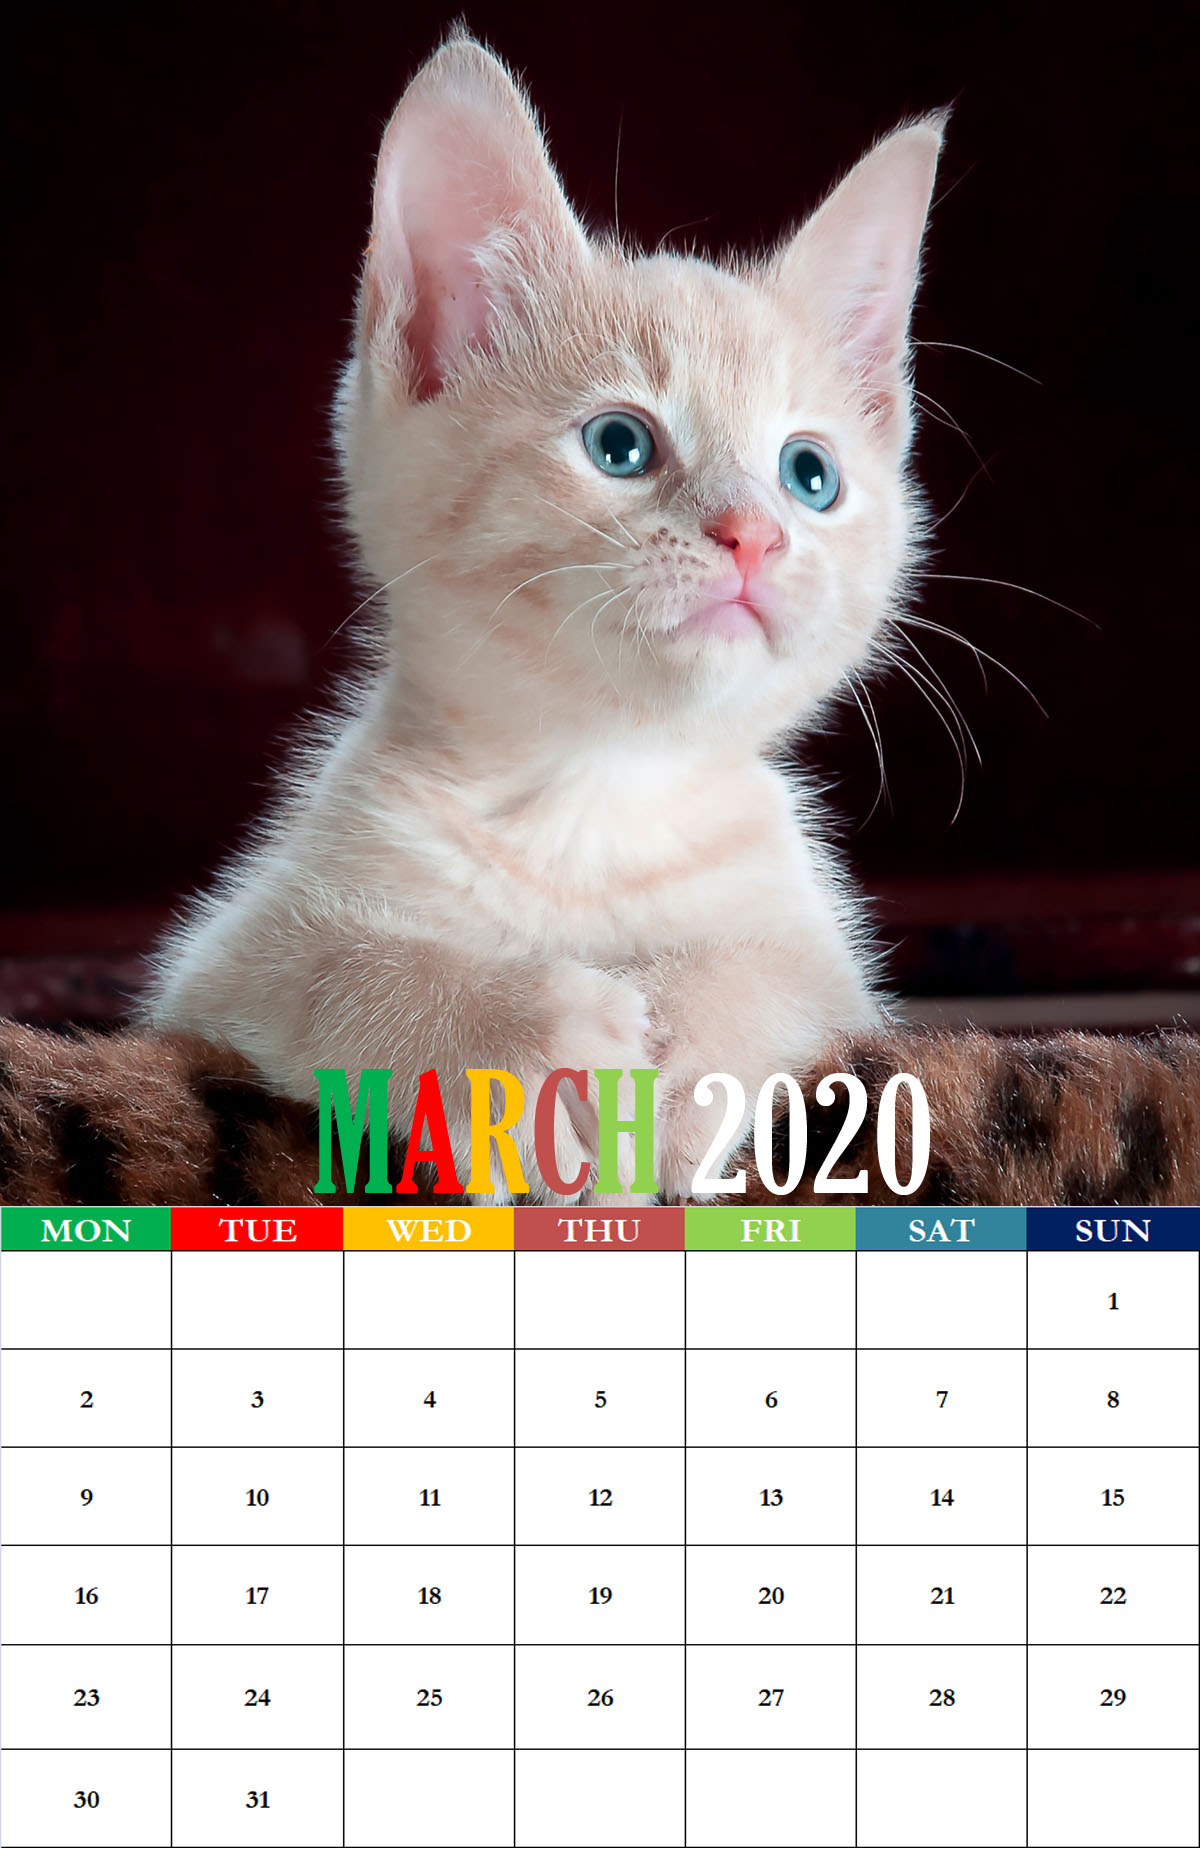 2020 March Calendar Wallpapers For iPhone Desktop Mobile Tablets 1200x1850